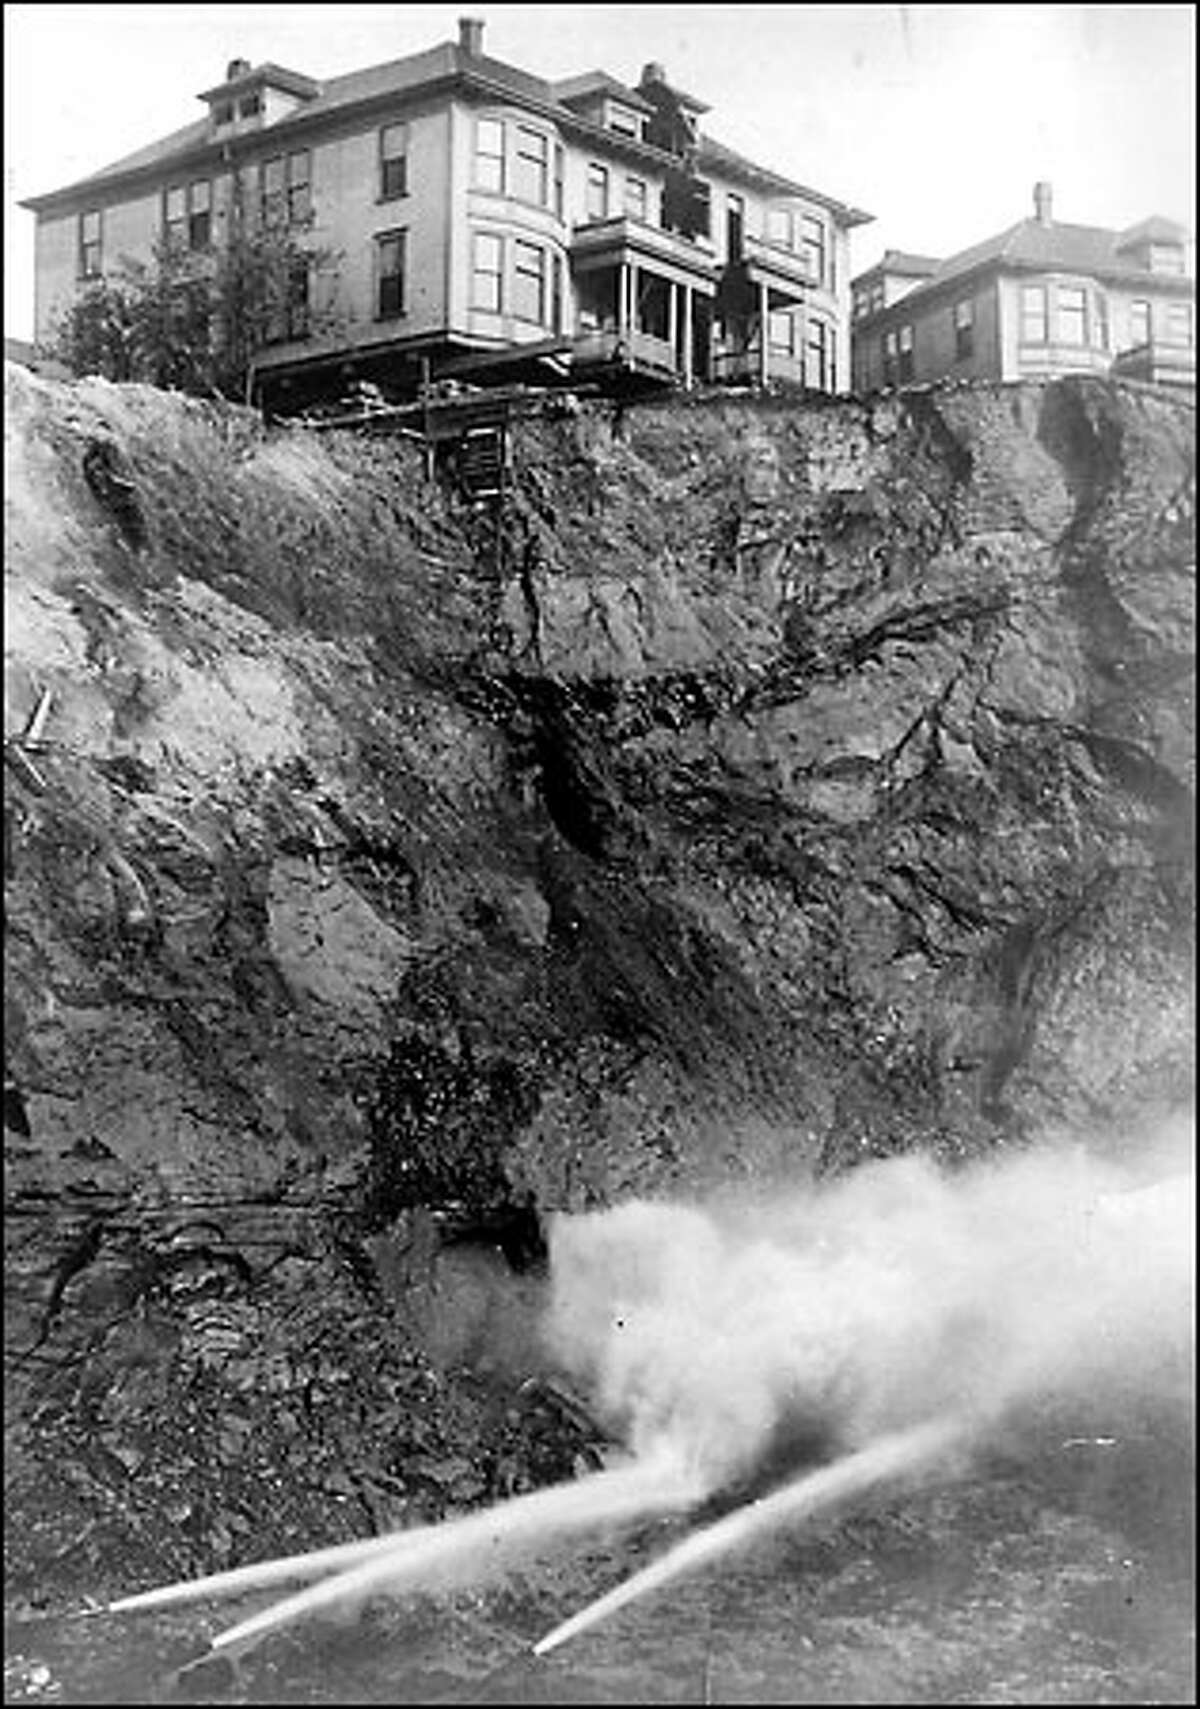 Denny Regrade, 1908: Denny Hill was a steep and inconvenient bump on the north side of downtown Seattle until it was flattened nearly a century ago by city engineers. The regrading of Denny Hill first began in 1898 and carried on in various phases until 1930. It was only one of several projects to level the city, or at least make its hills more easily navigable. Some property owners, including those who owned the homes in this photo at the foot of Blanchard Street, delayed selling out as the city sluiced around them. At times houses were left on their own individual pedestals, with ladders as the only means of access.